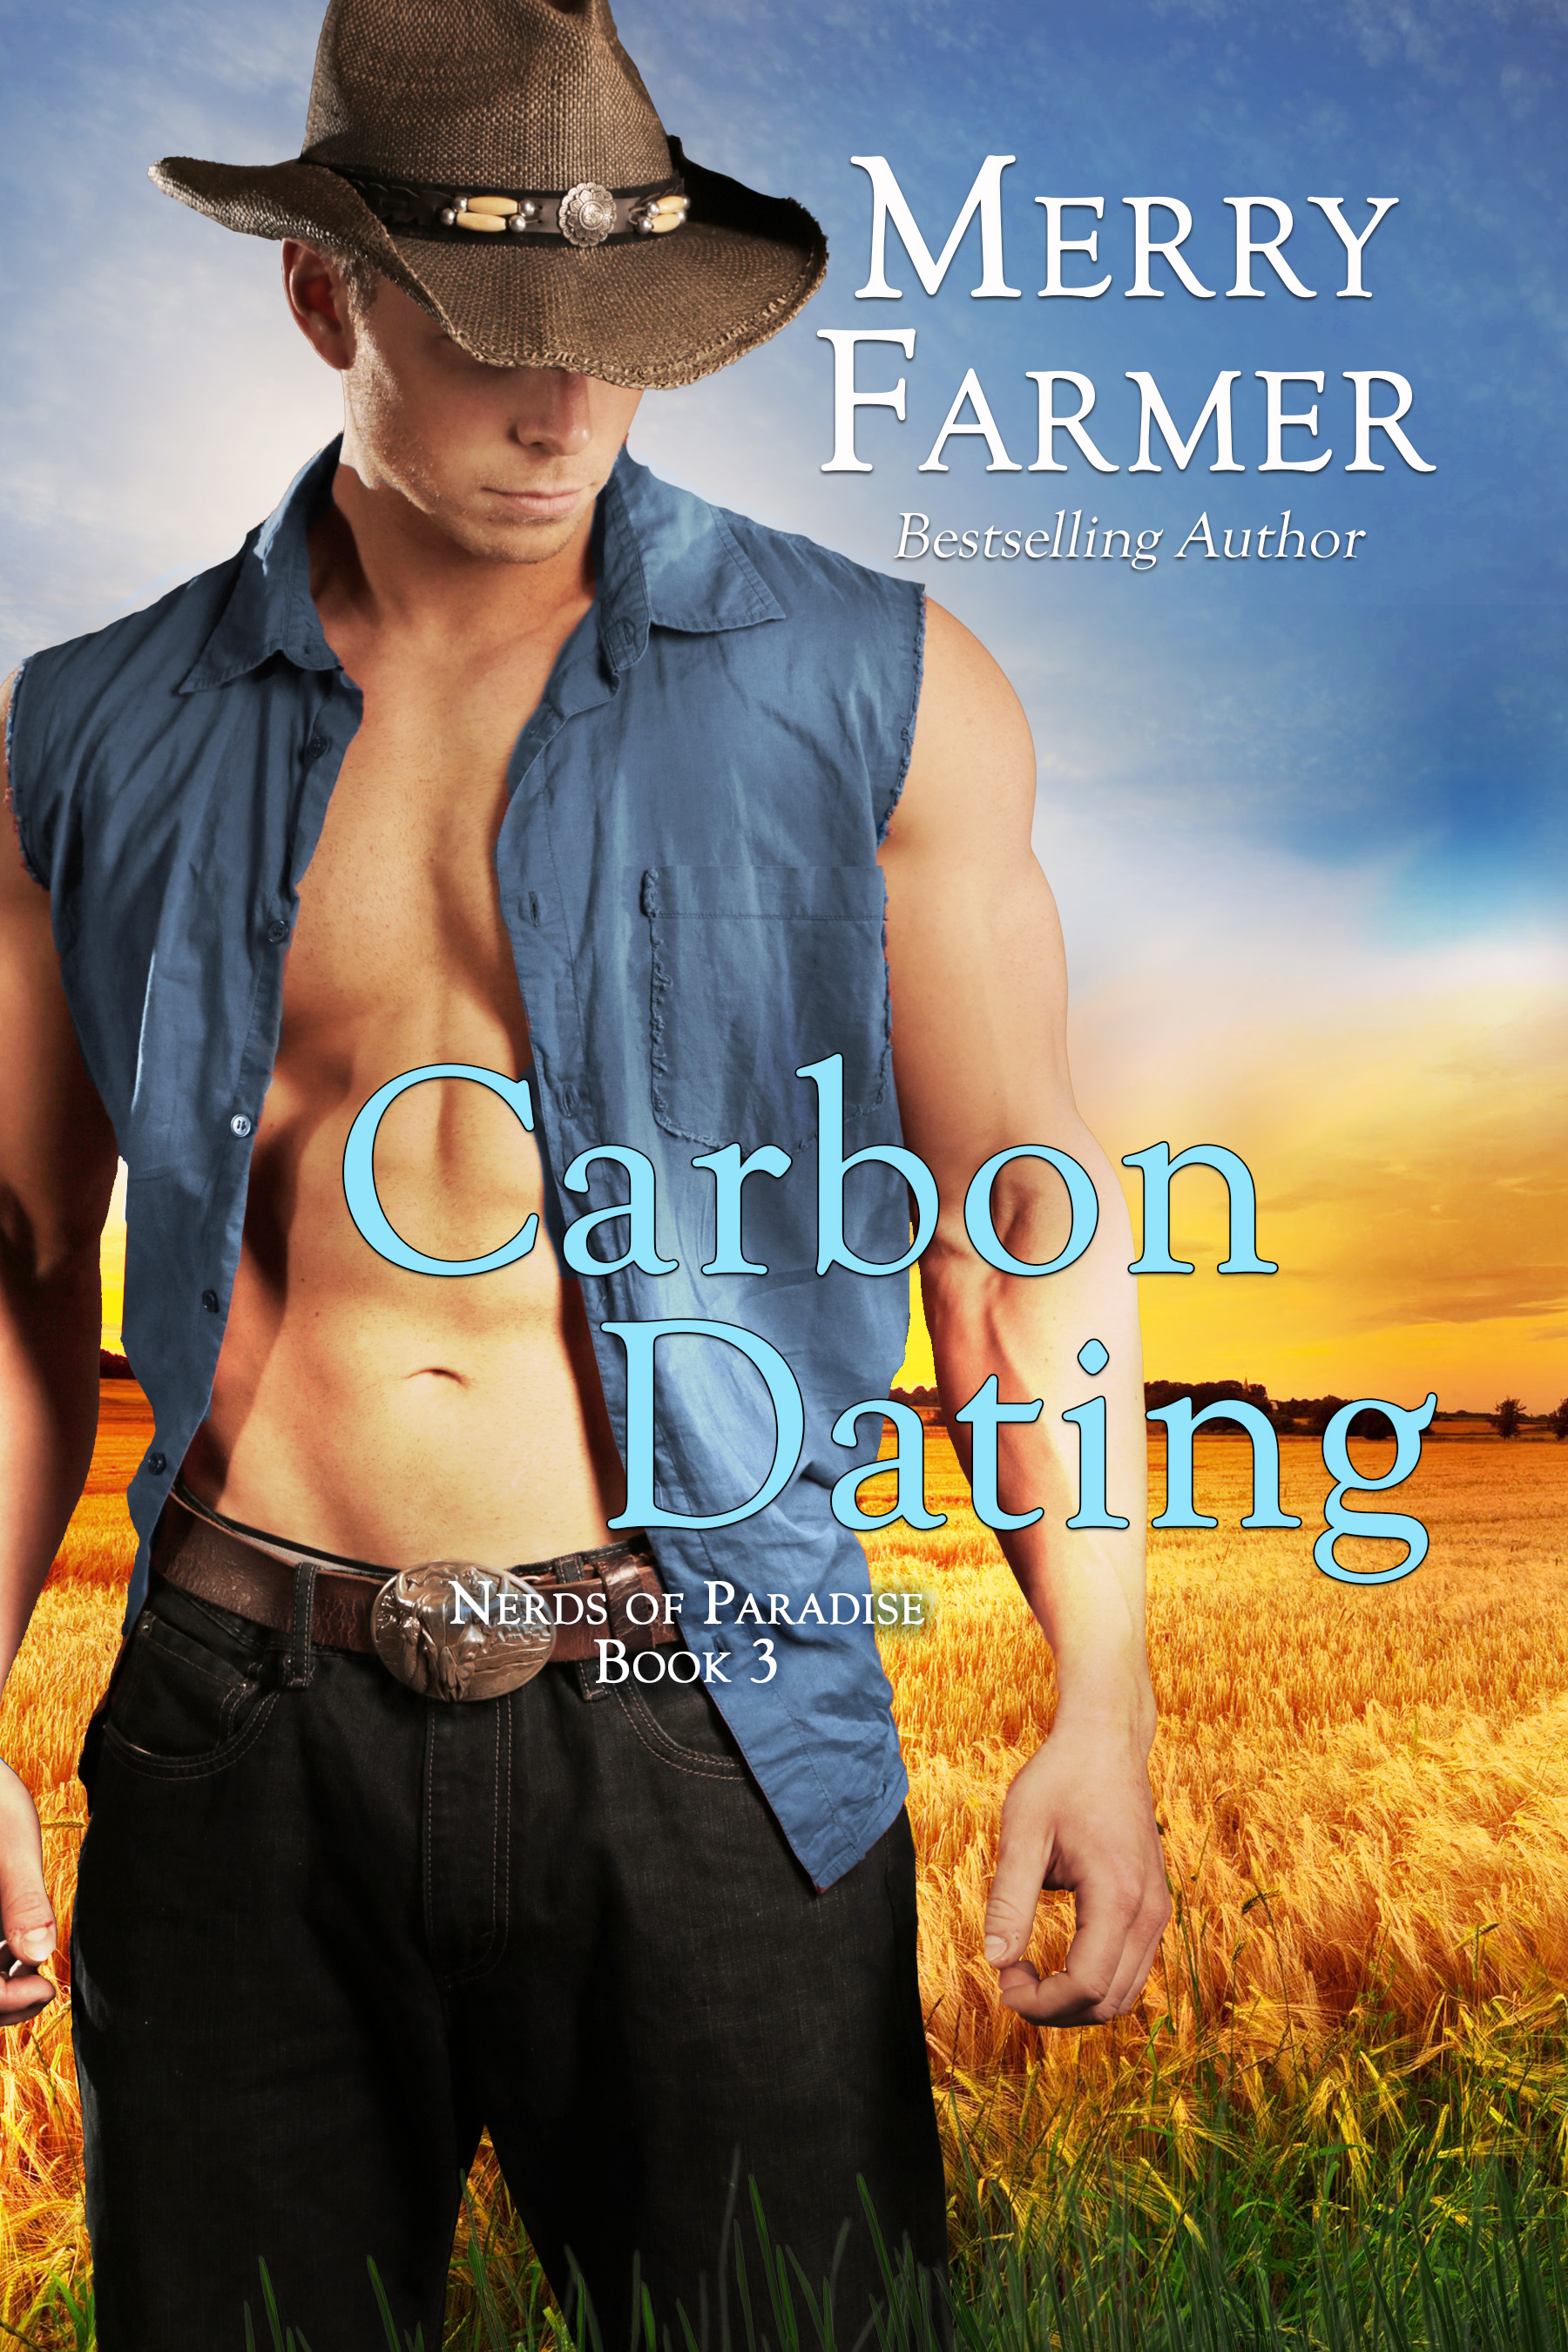 Carbon Dating (Book 3) - A boy… A girl… A dinosaur…Laura Kincade is a nerd, and proud of it. She designs rockets, she hunts for dinosaur fossils, and she knows who she is. So when sizzling cowboy Ted Flint bumps into her at a party—literally, with messy results—she instantly feels out of her depth. Could a guy like Ted really be interested in a girl like her? It certainly seems like it when he invites her out to his ranch to take a look at his bone.*ahem* His DINOSAUR bone.Ted has never met anyone like Laura. She's funny, smart, and adorable. So why is she playing so hard to get? He has a harder time getting her to say yes to a date with him than he has digging up the fossil Laura discovers on his ranch. If not for ice cream, all would be lost.But when the value of the fossil leaks to the community, Ted suddenly finds himself fighting to keep it and the ranch, and Laura too. The Bonnevilles will stop at nothing to claim the discovery for themselves, and Ted and Laura find themselves in danger of losing the battle, and each other too.A boy… A girl… A dinosaur… And love.PLEASE BE ADVISED: Steam level - Very Hot